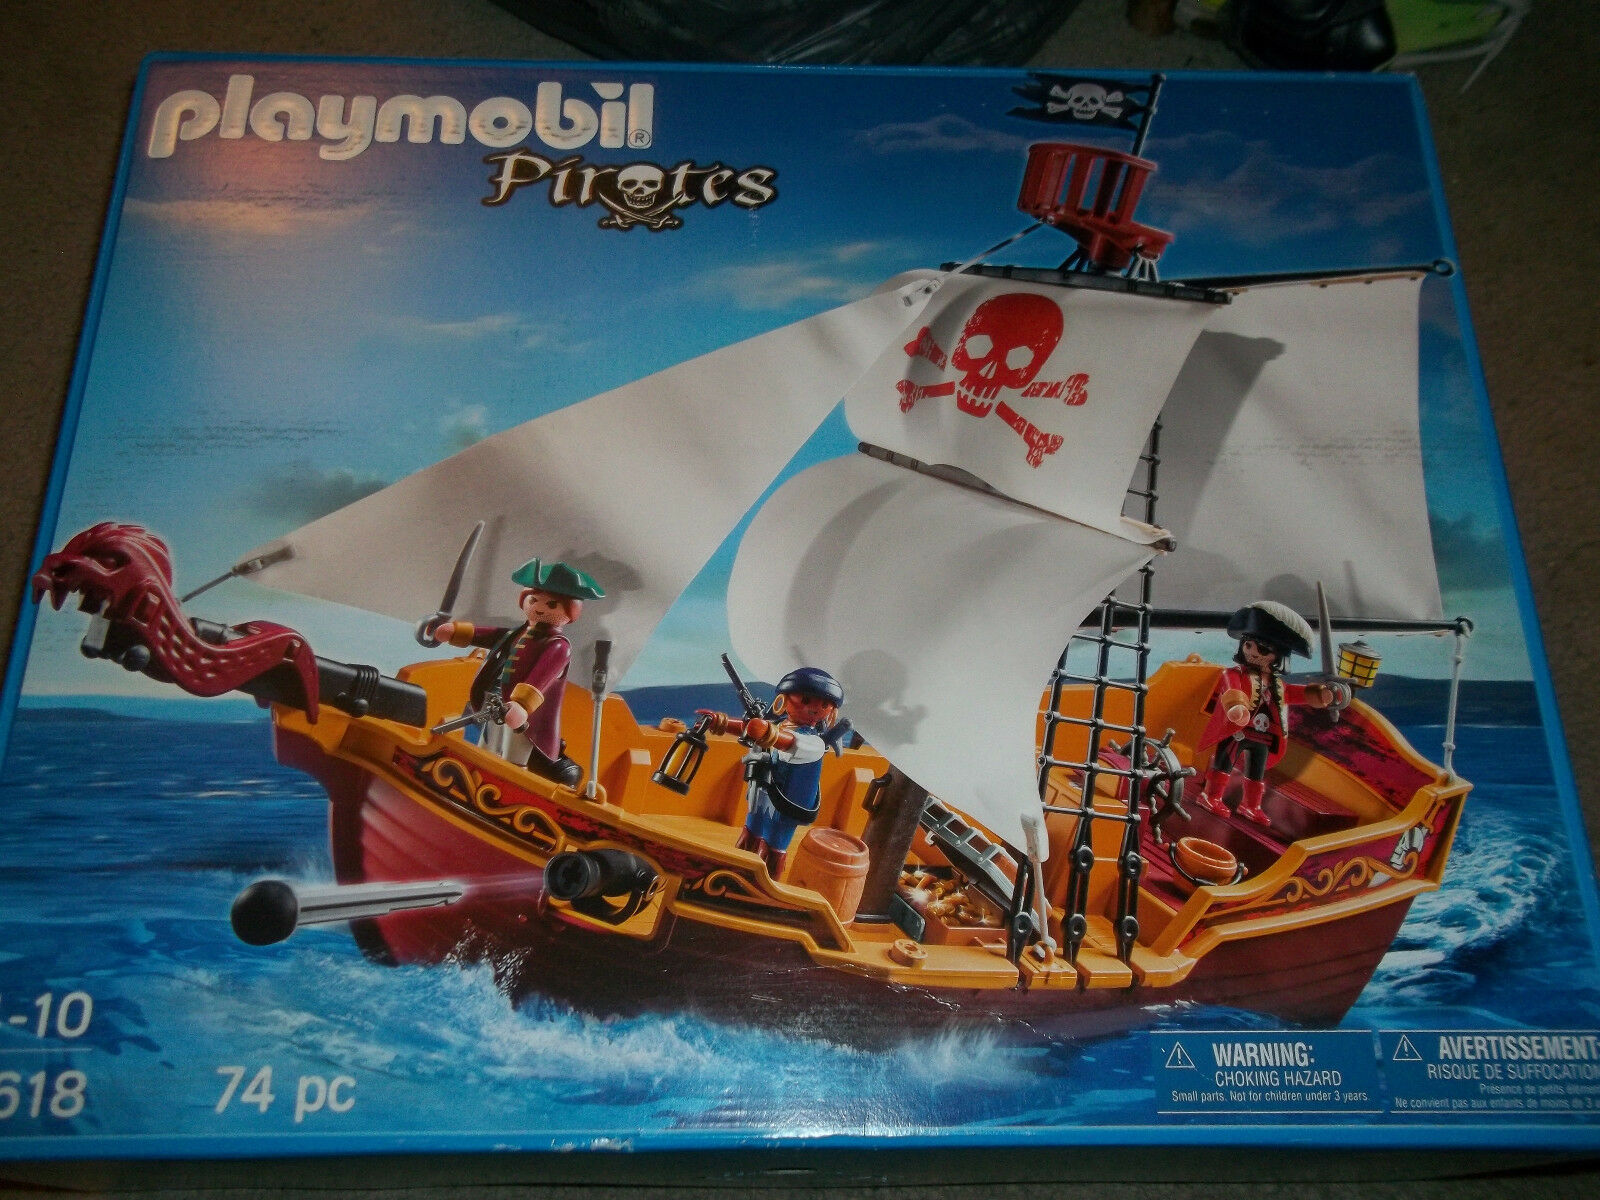 Playmobil Pirates Pirate Ship with 3 pirates firing cannons New sealed